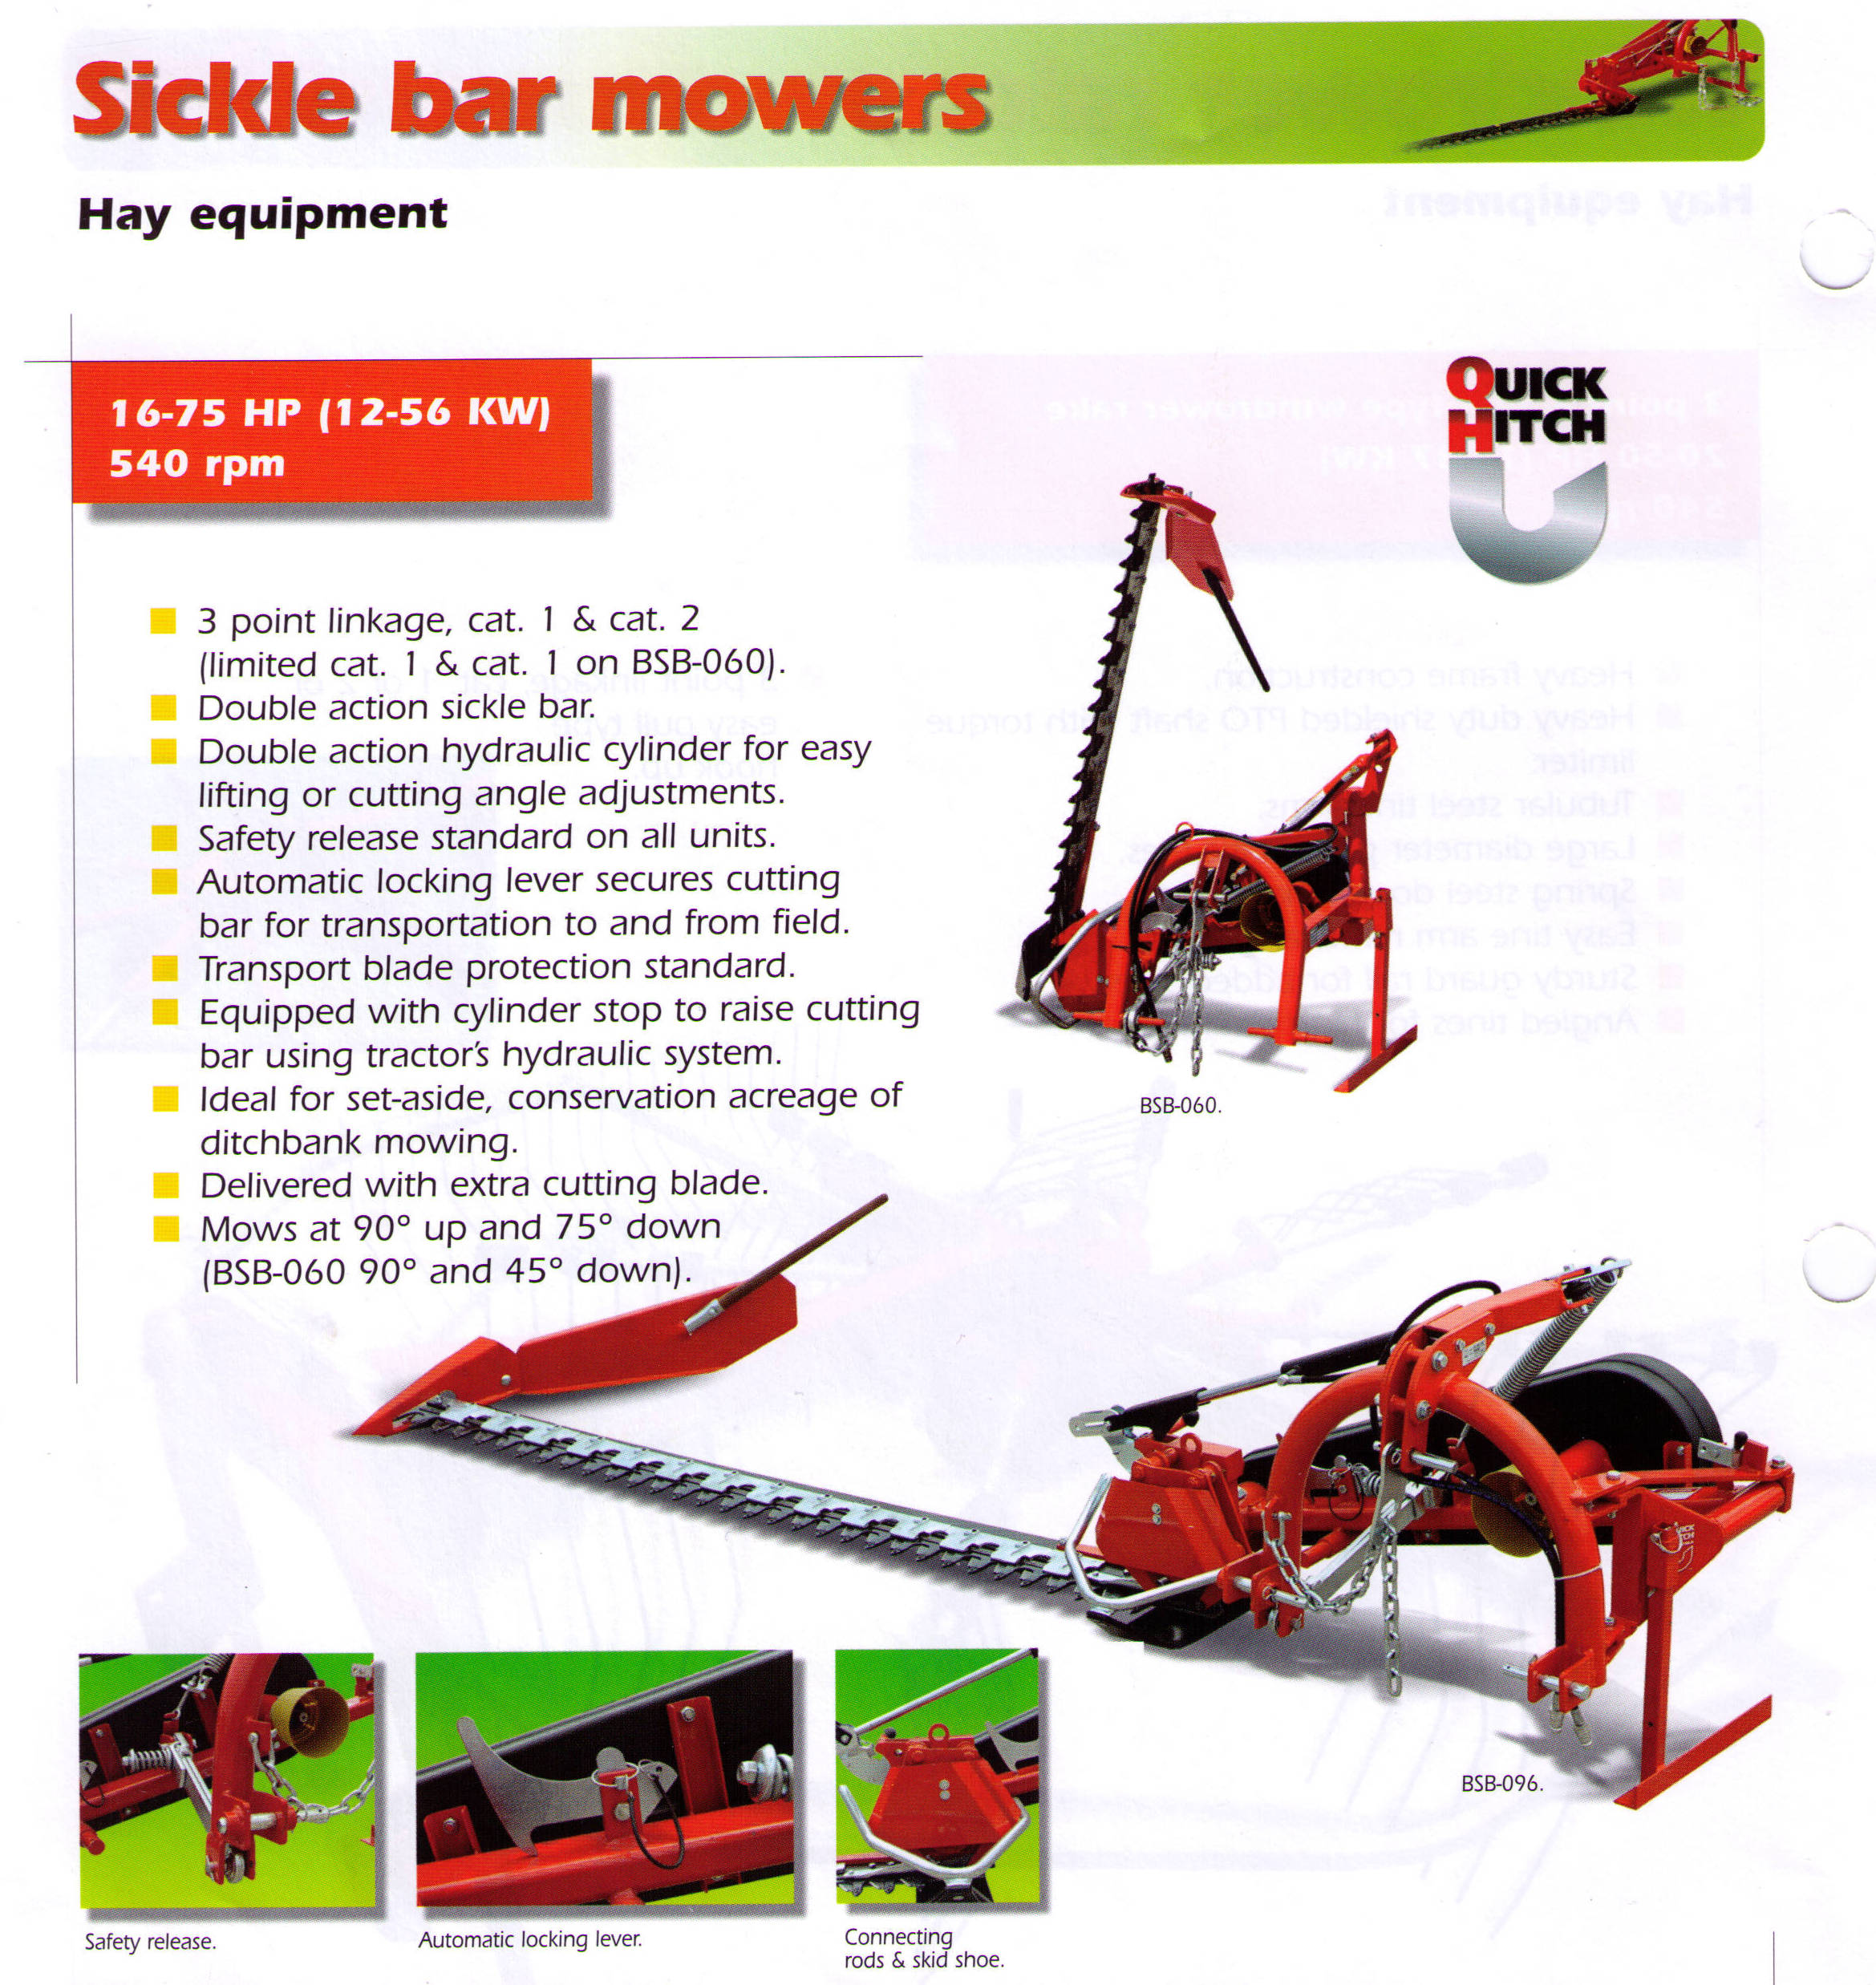 Features Befco Sicklebar Mowers